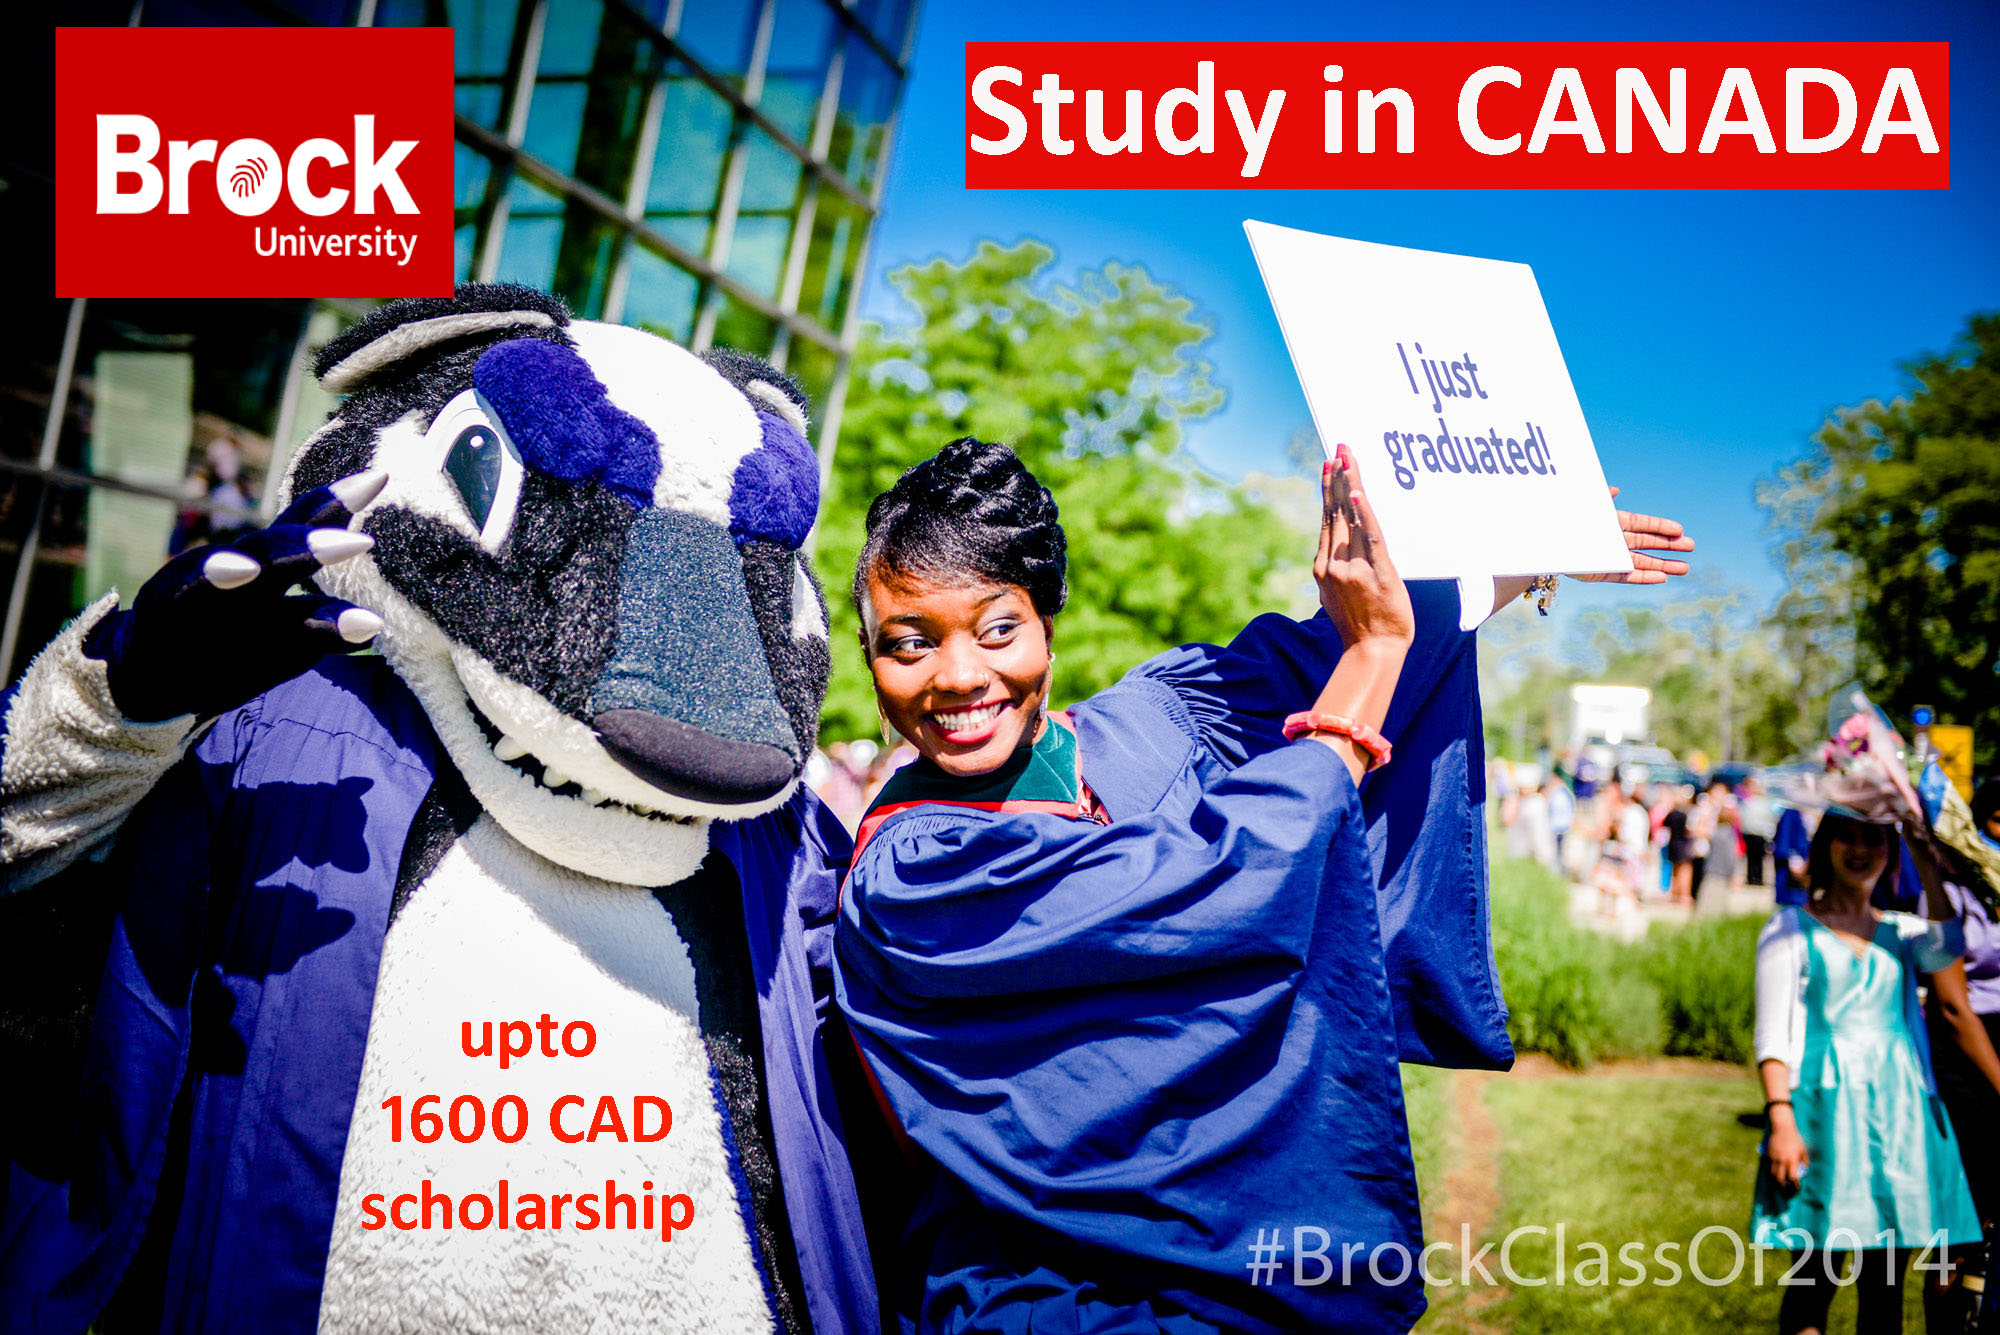 Graduation-BrockU1 copy.jpg